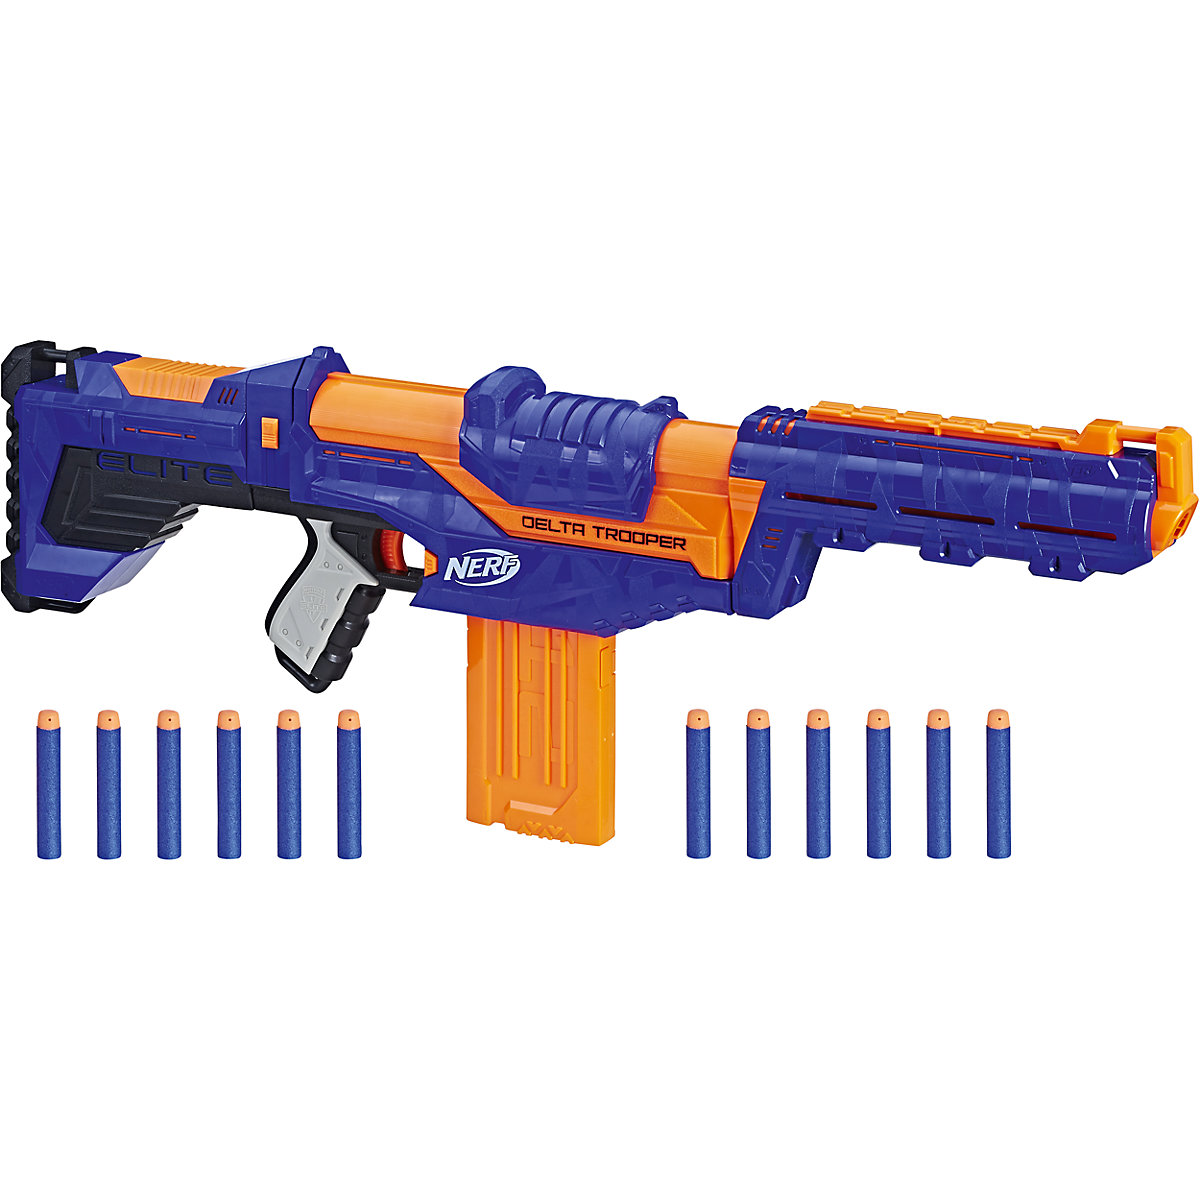 Toy Guns NERF 8376467 Children Kids Toy Gun Weapon Blasters Boys Shooting games Outdoor play children play house toy